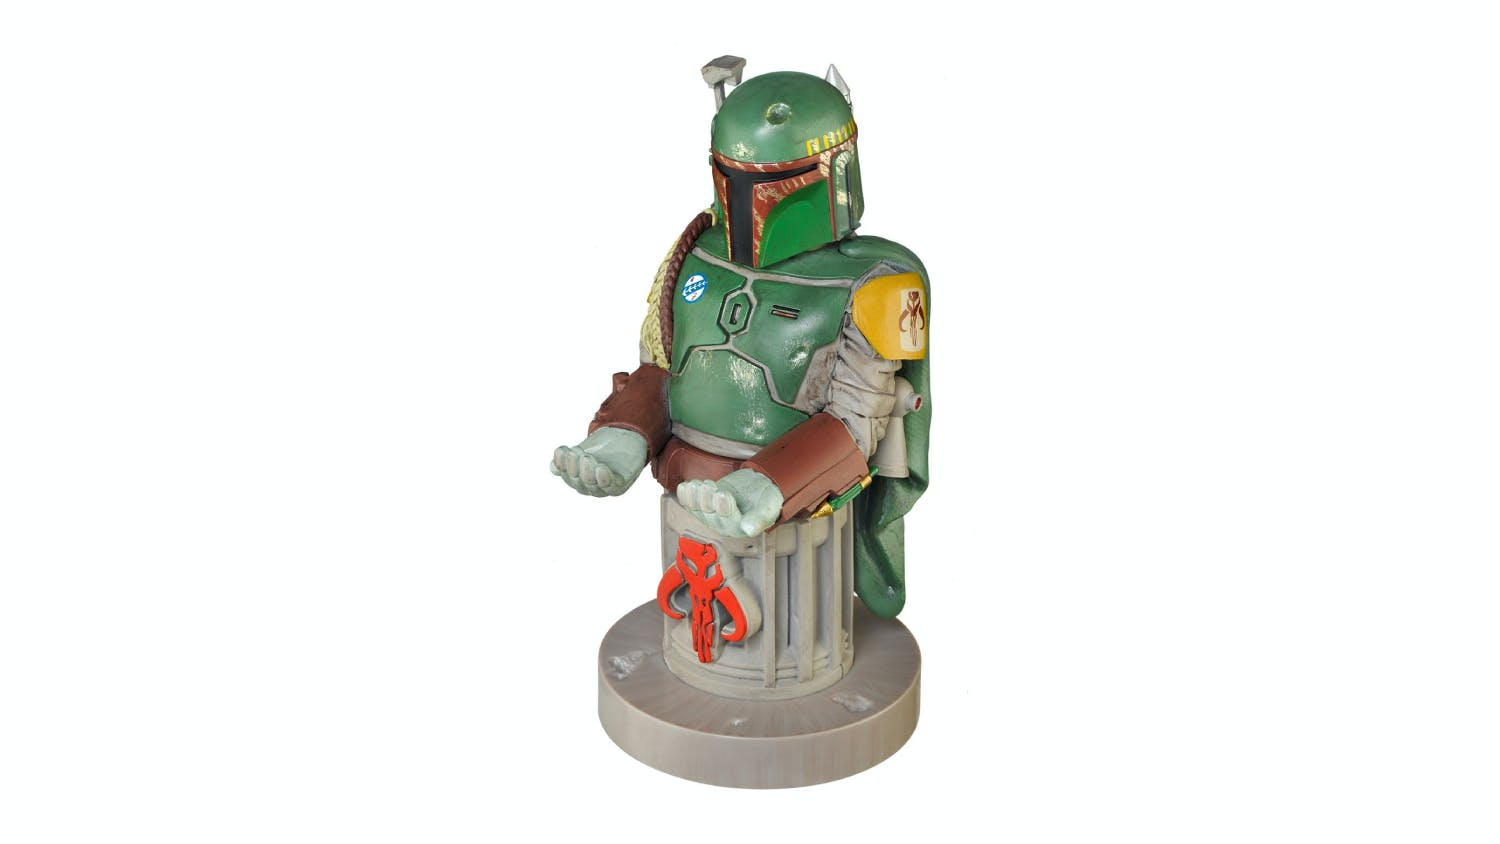 Cable Guys Phone/Controller Holder - Boba Fett Plinth